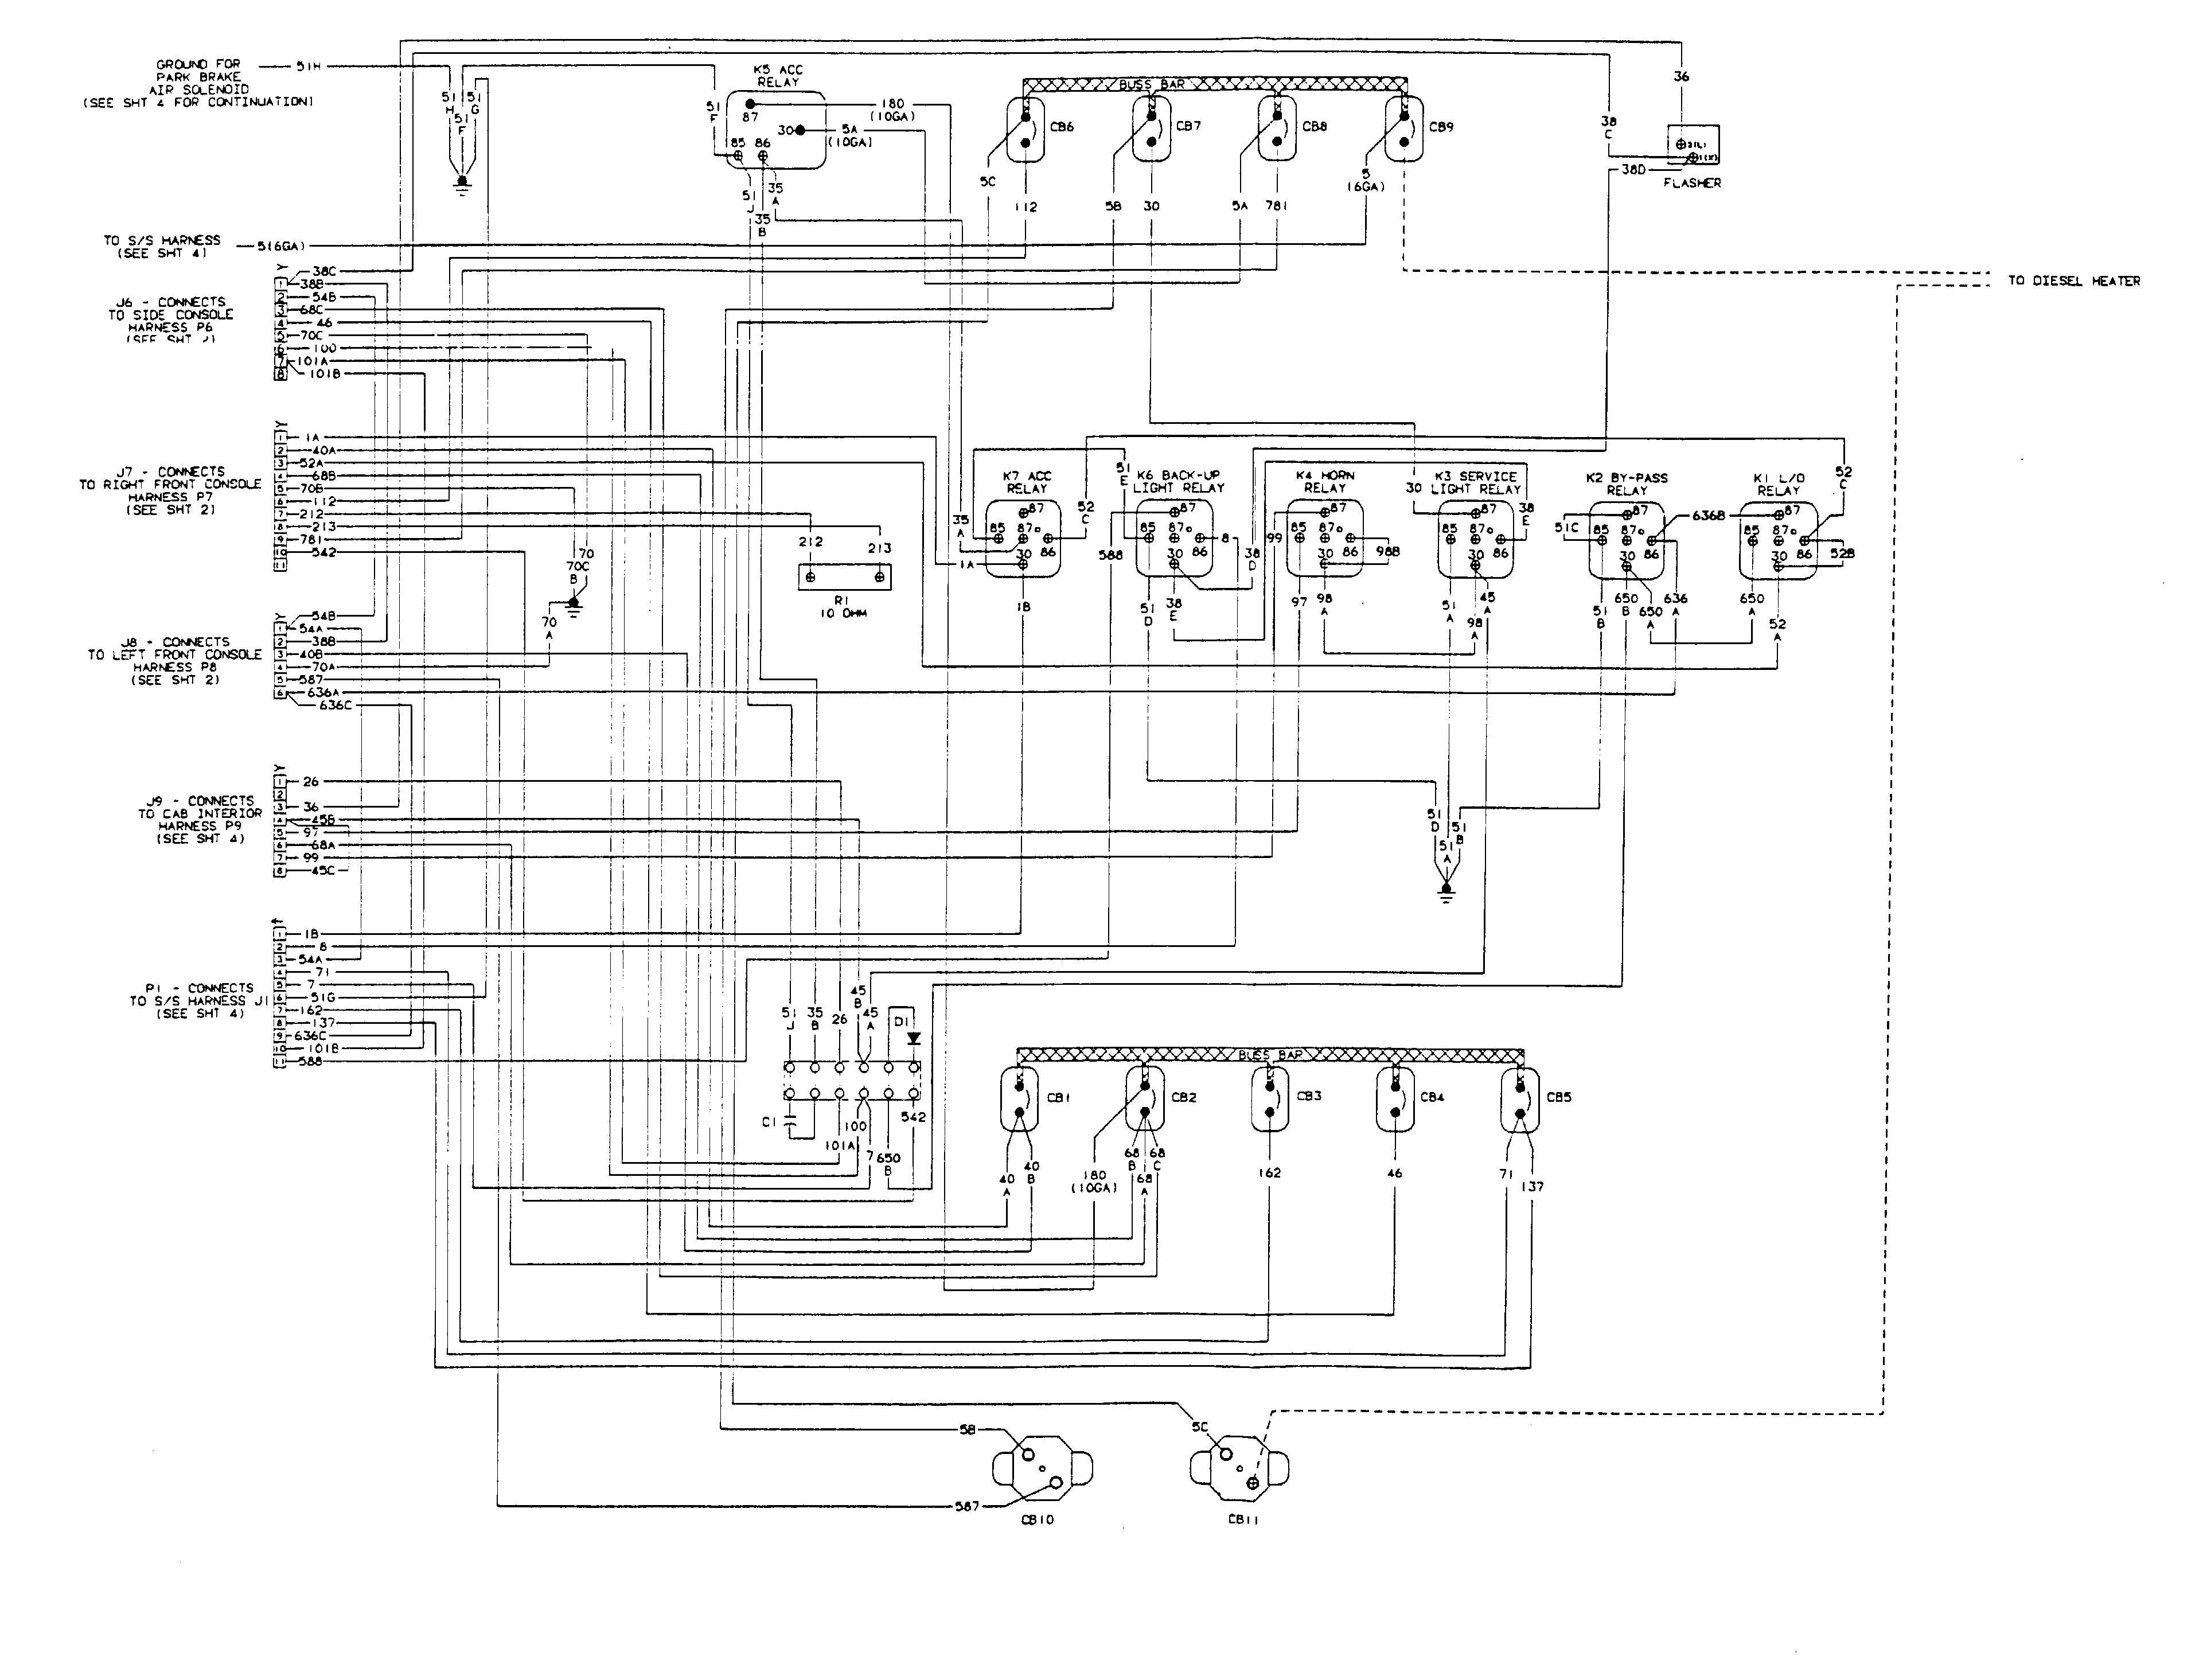 Demag Wiring Diagram Another Blog About Atlas Intercom Speaker Diagrams Crane Get Free Image Pendant